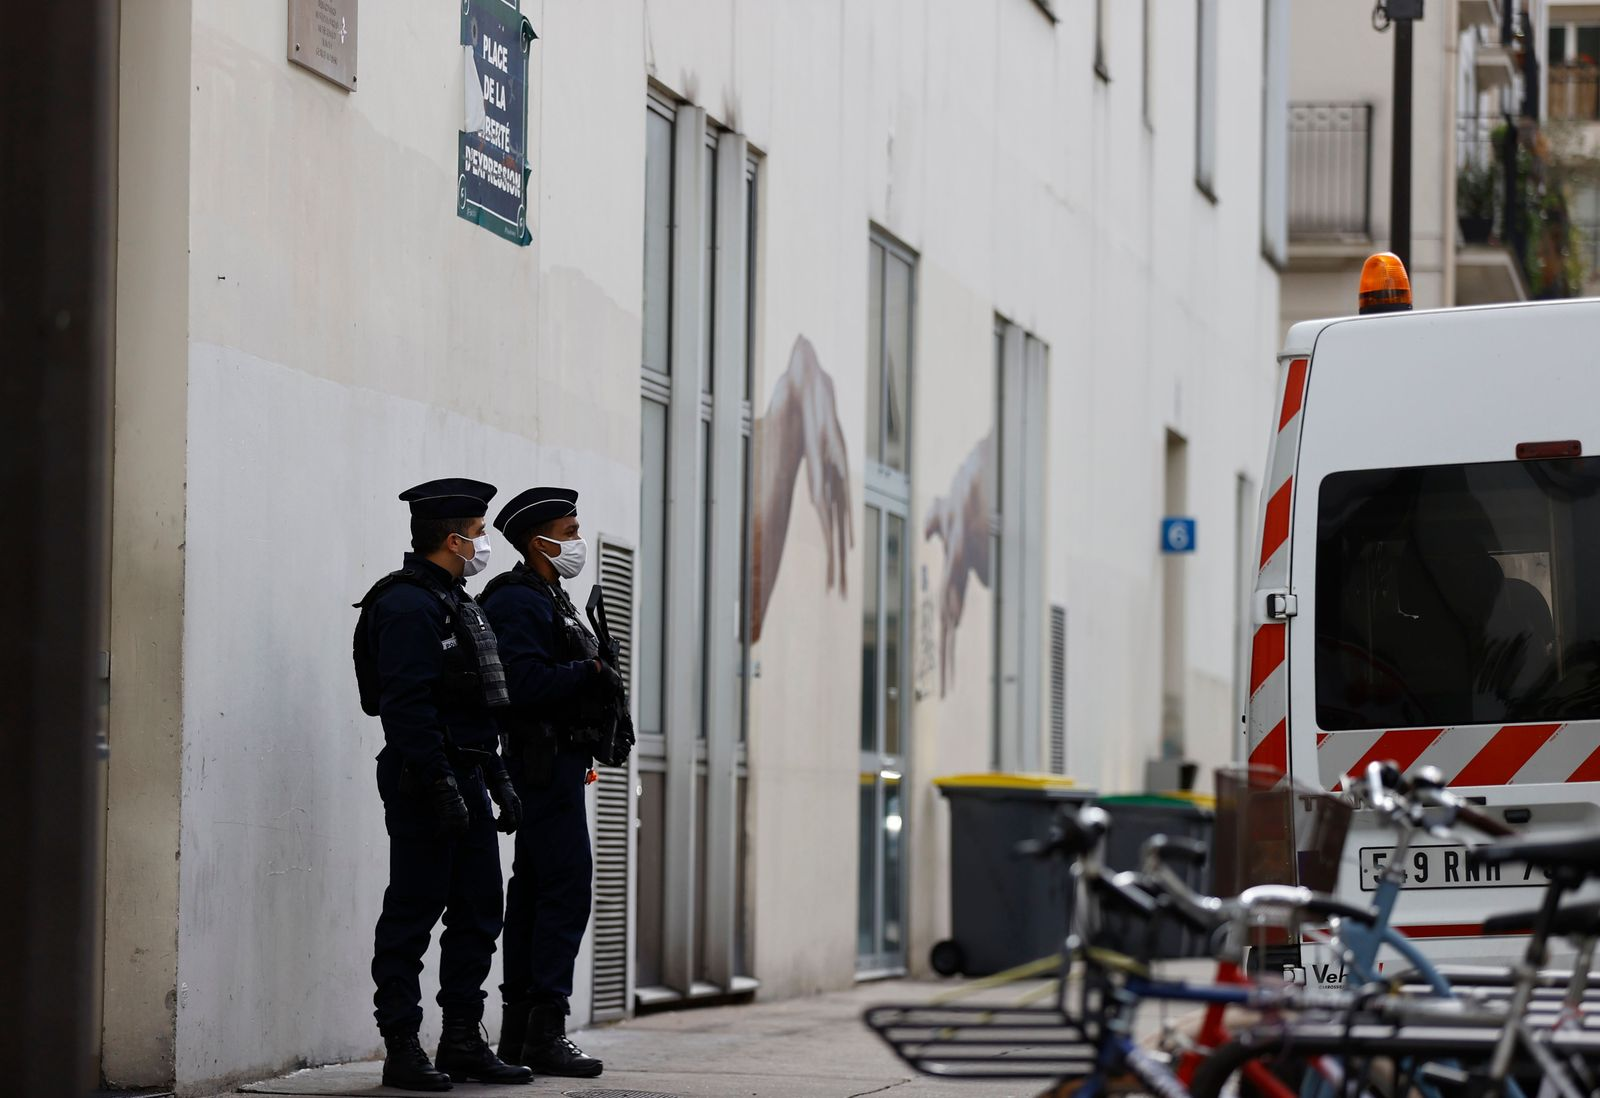 Knife attack near former Charlie Hebdo offices, Paris, France - 26 Sep 2020